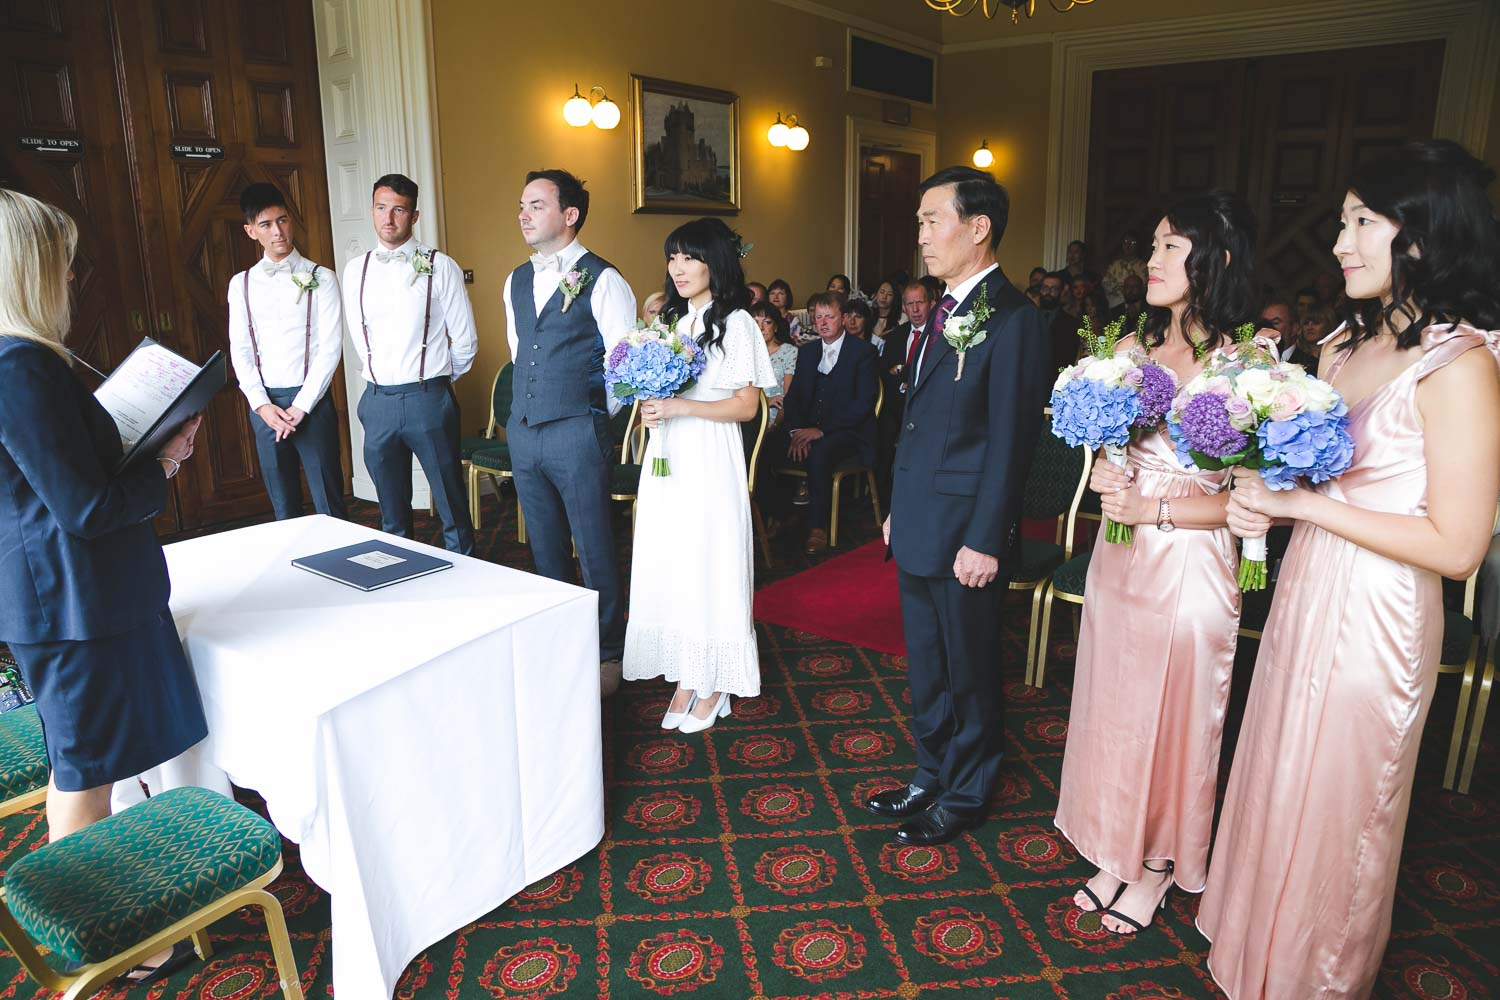 Belfast Castle Wedding